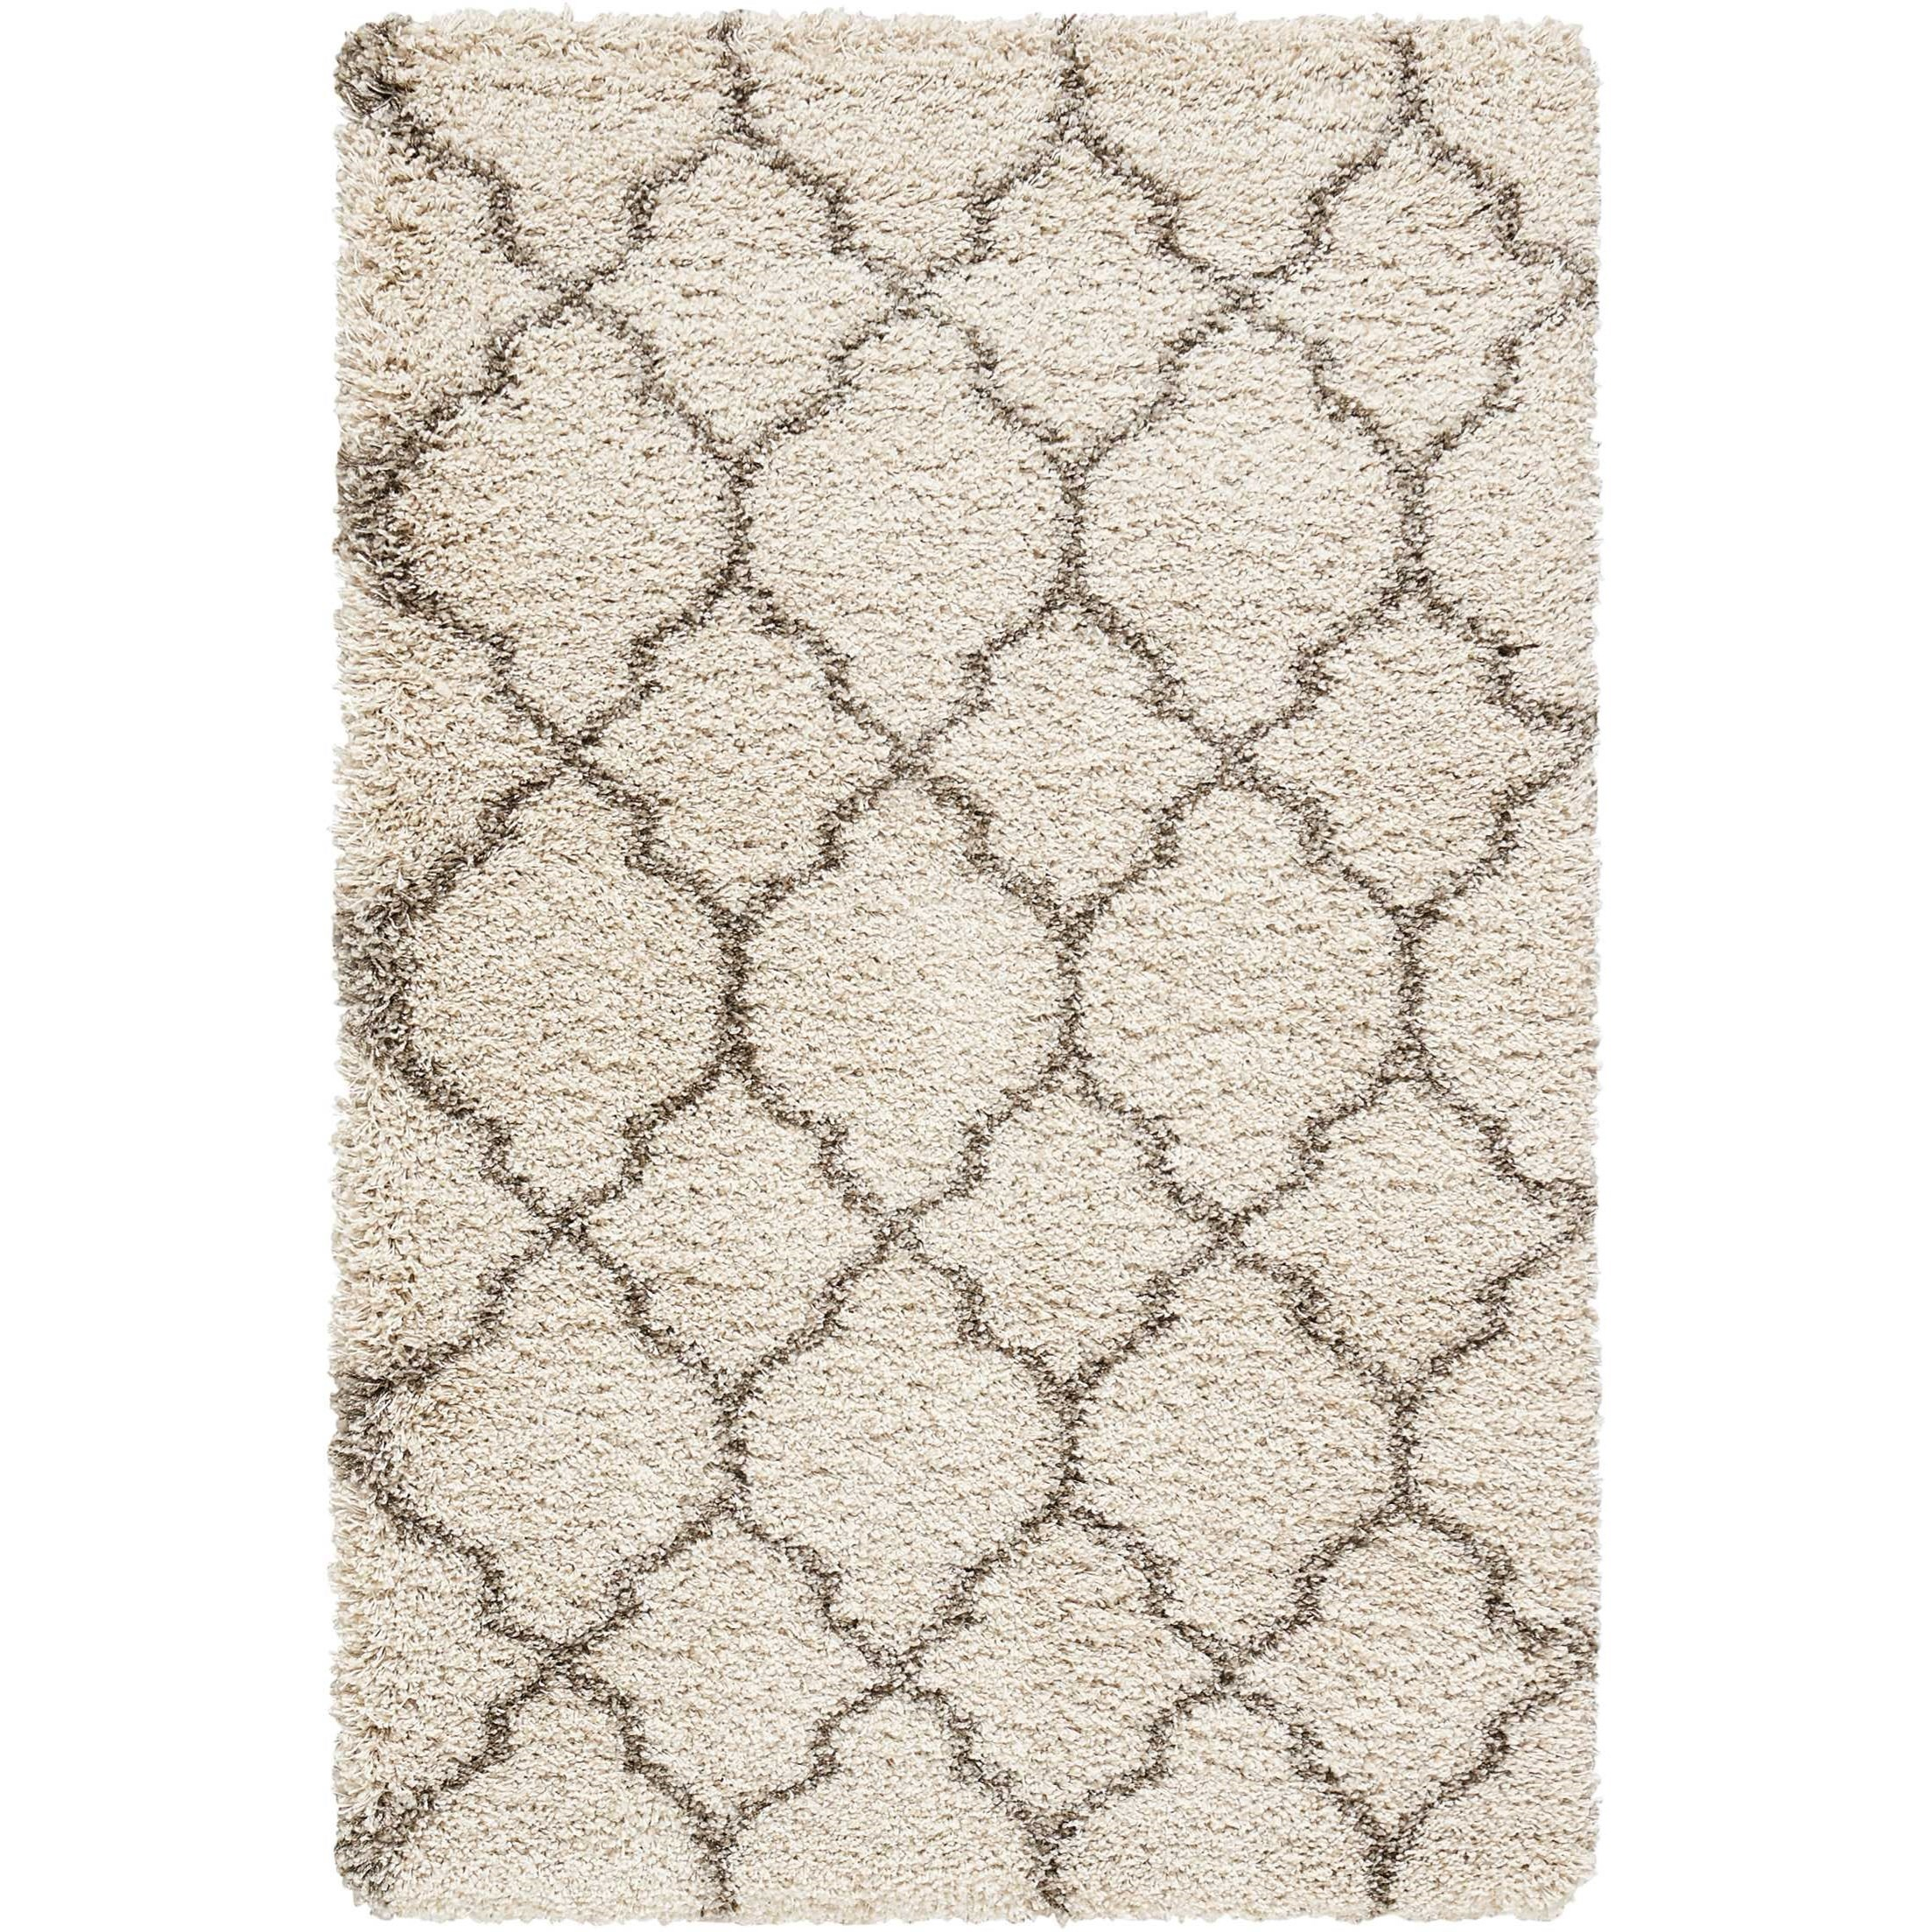 """Amore 3'2"""" x 5' Cream Rectangle Rug by Nourison at Sprintz Furniture"""